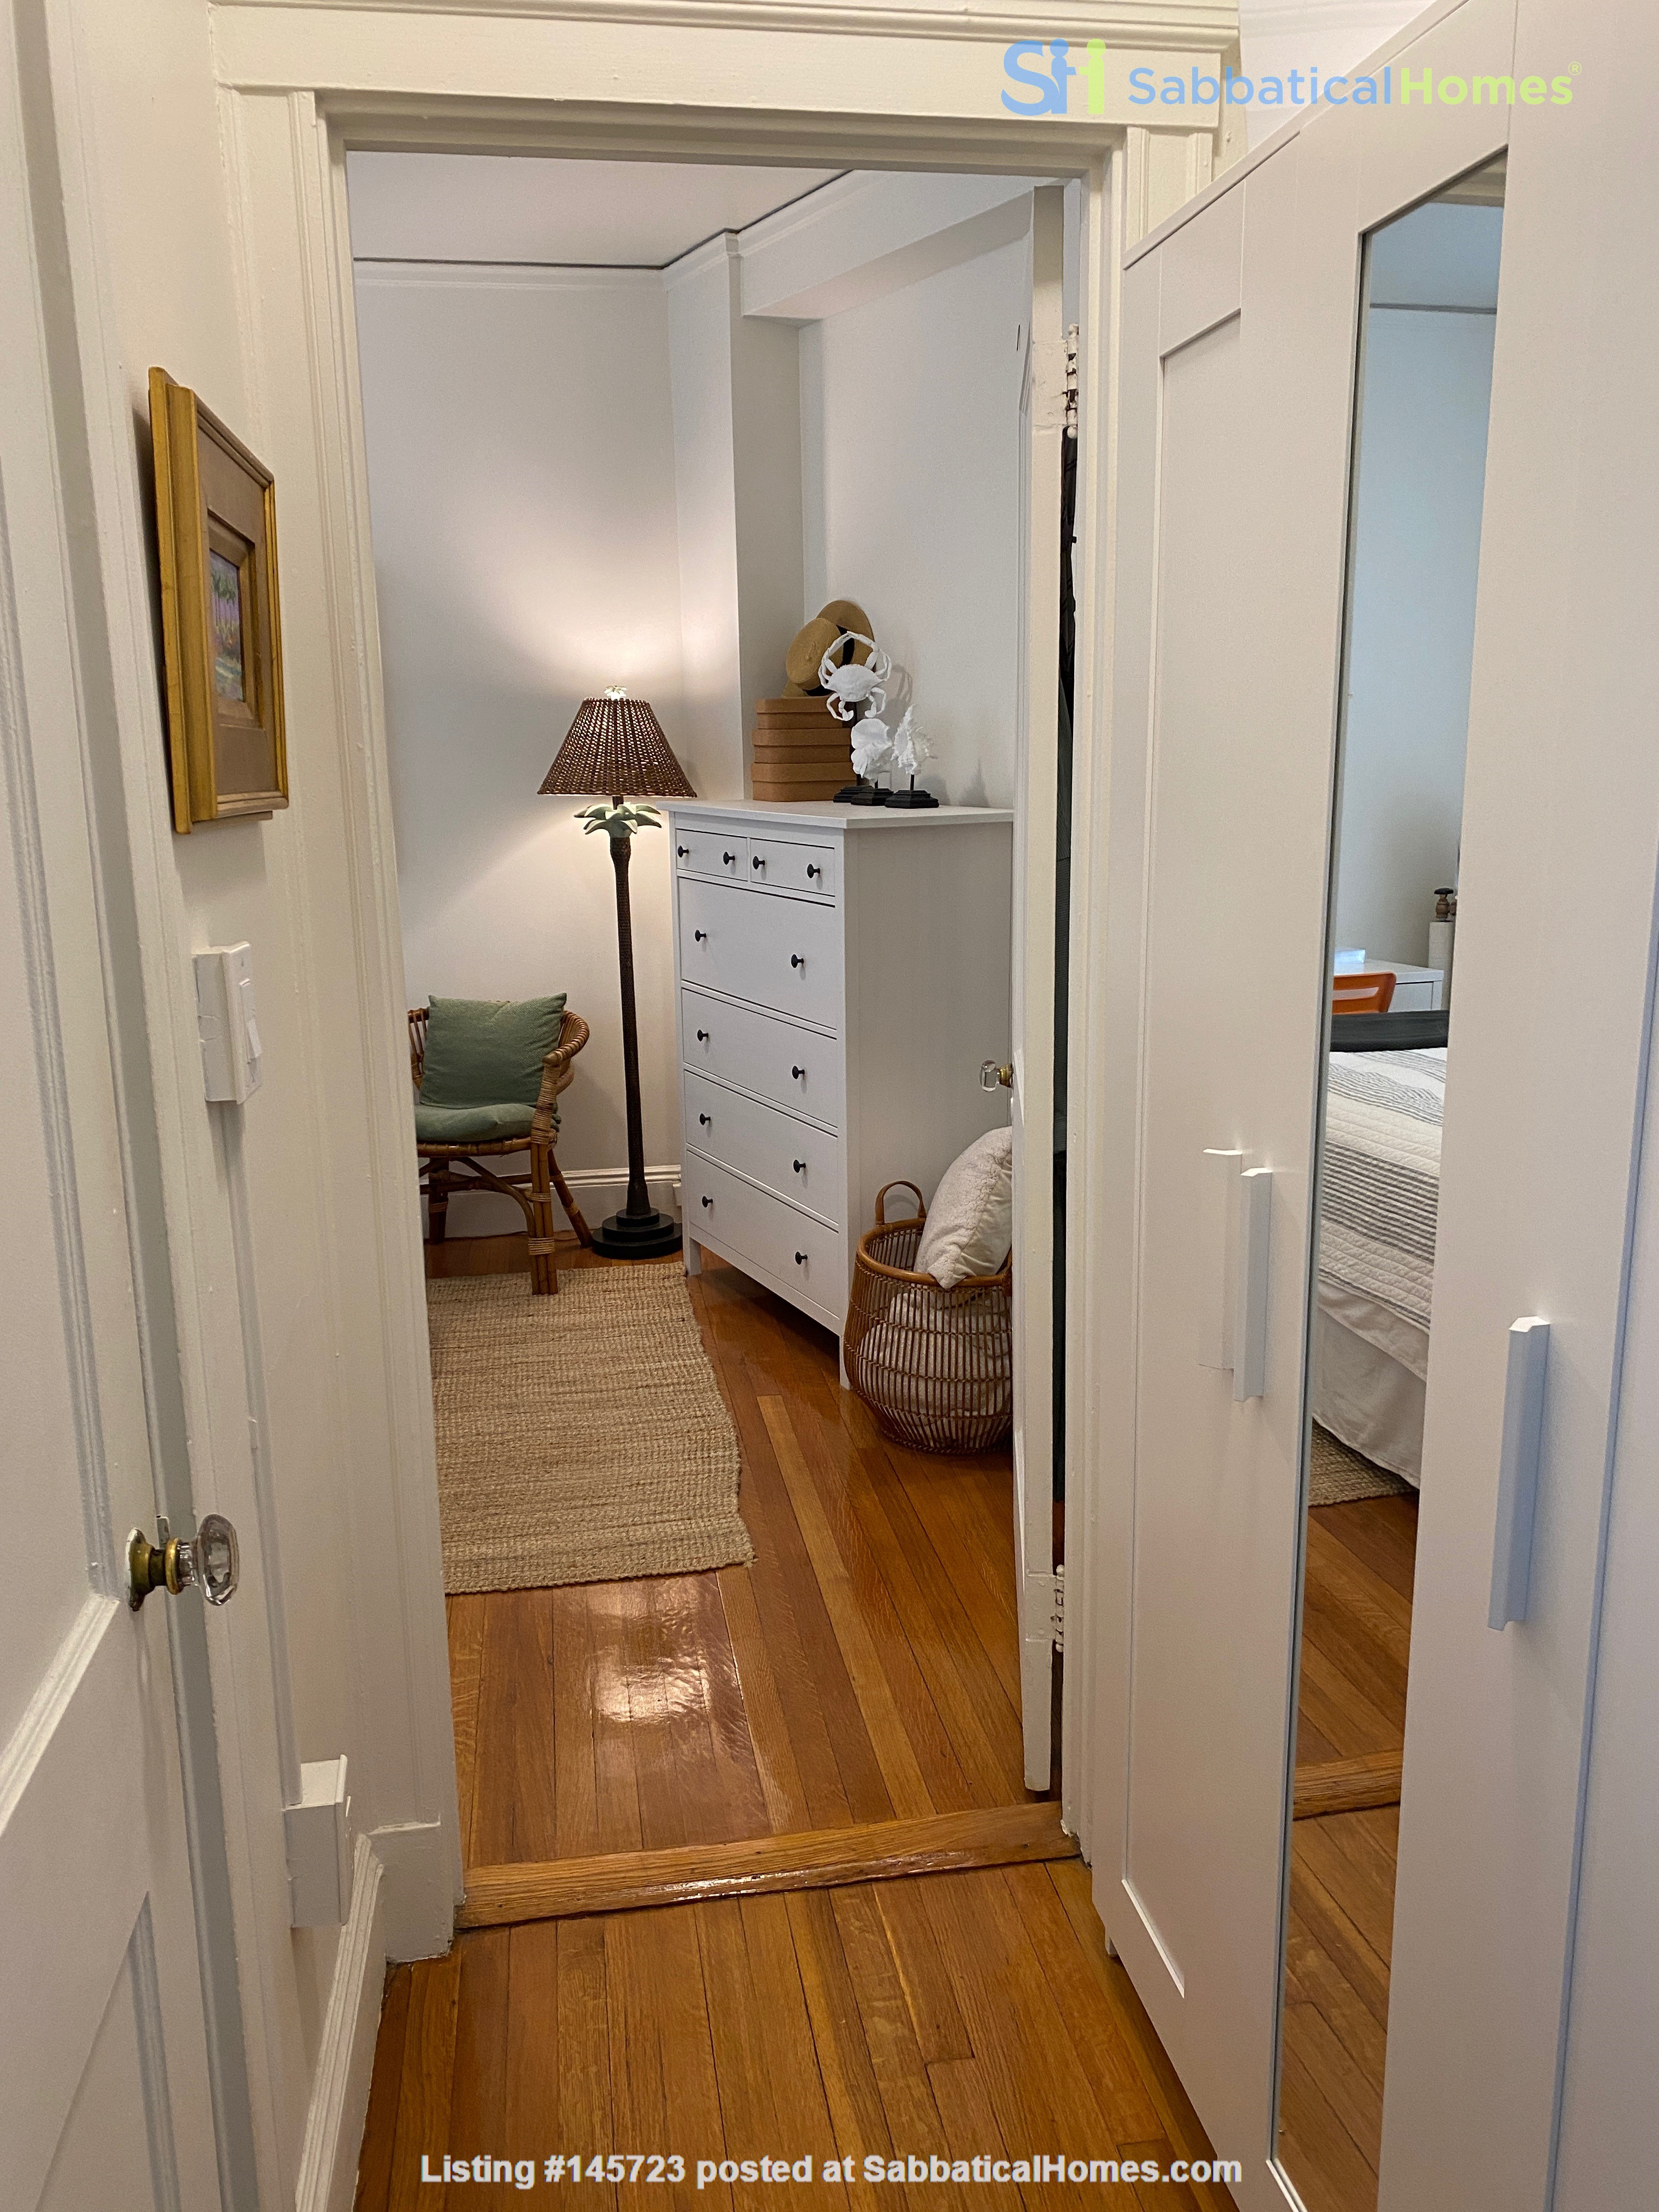 For Rent: A wonderful apartment in the heart of Harvard Square! Home Rental in Cambridge, Massachusetts, United States 5